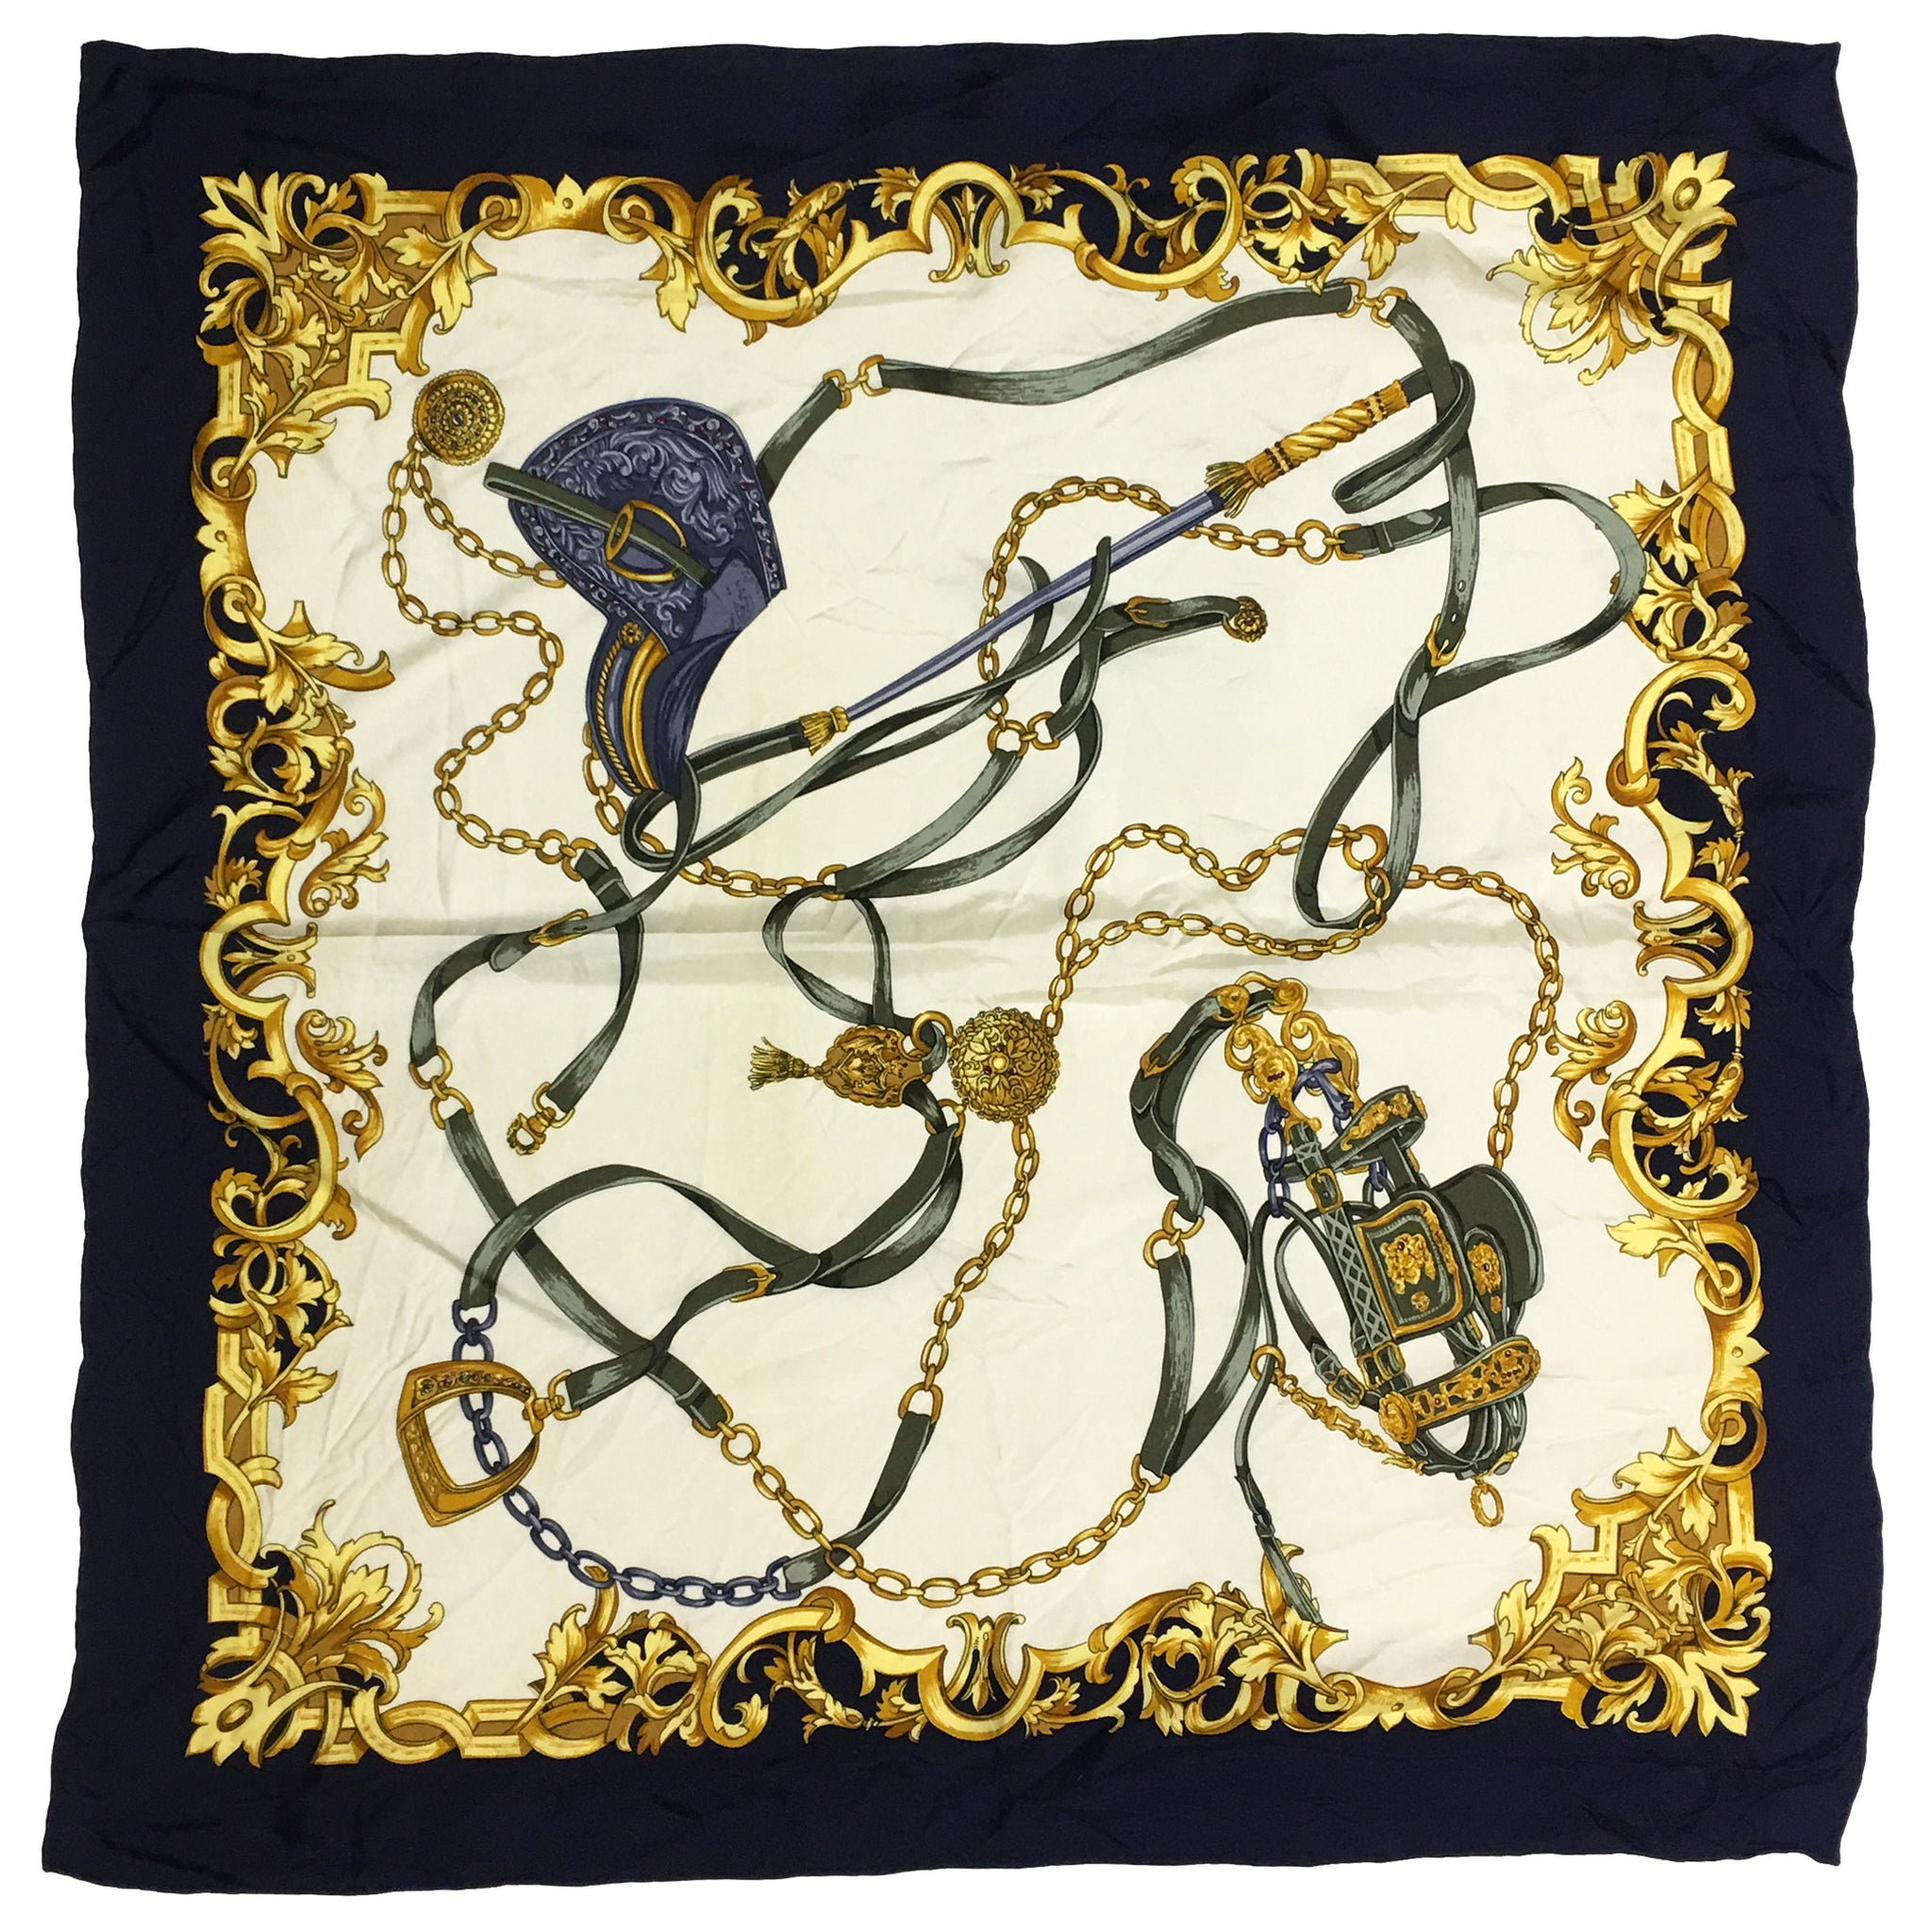 Gold Horseback Riding Silk Square Scarf